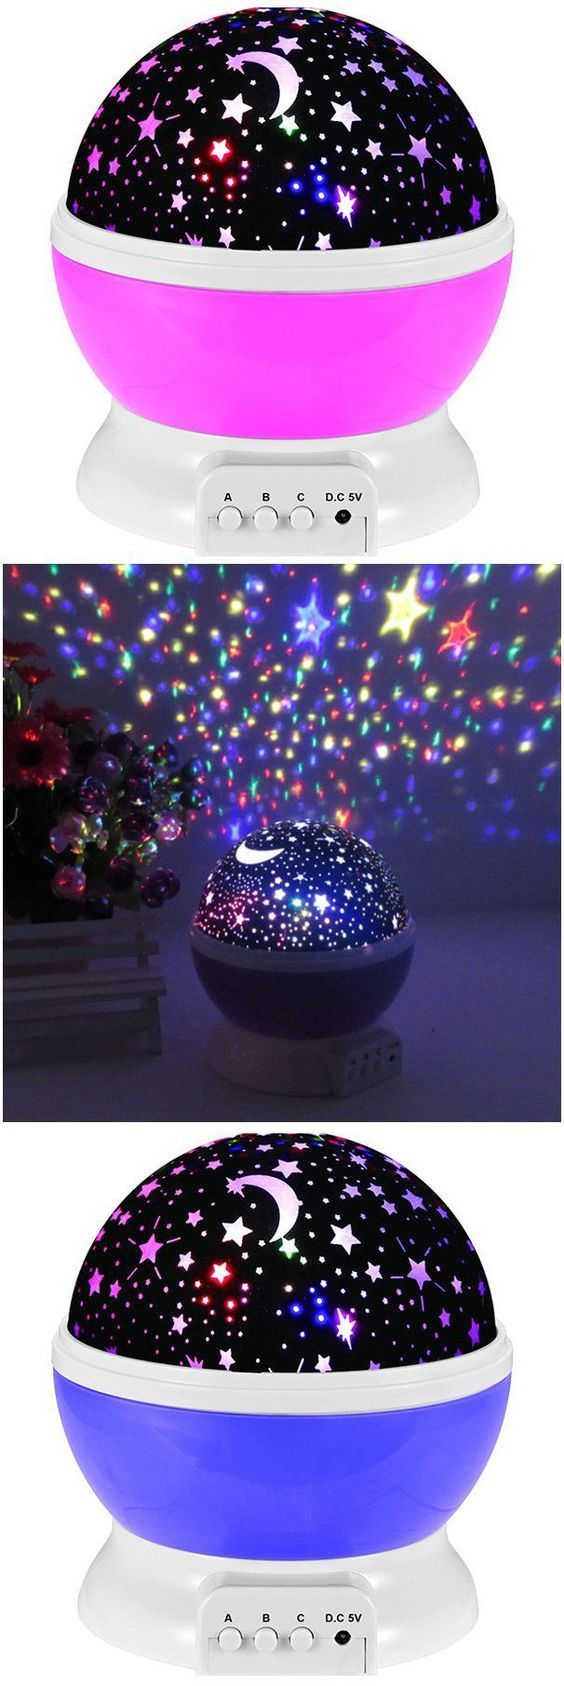 1097 Mew Starry Sky Babysbreath Autorotation LED